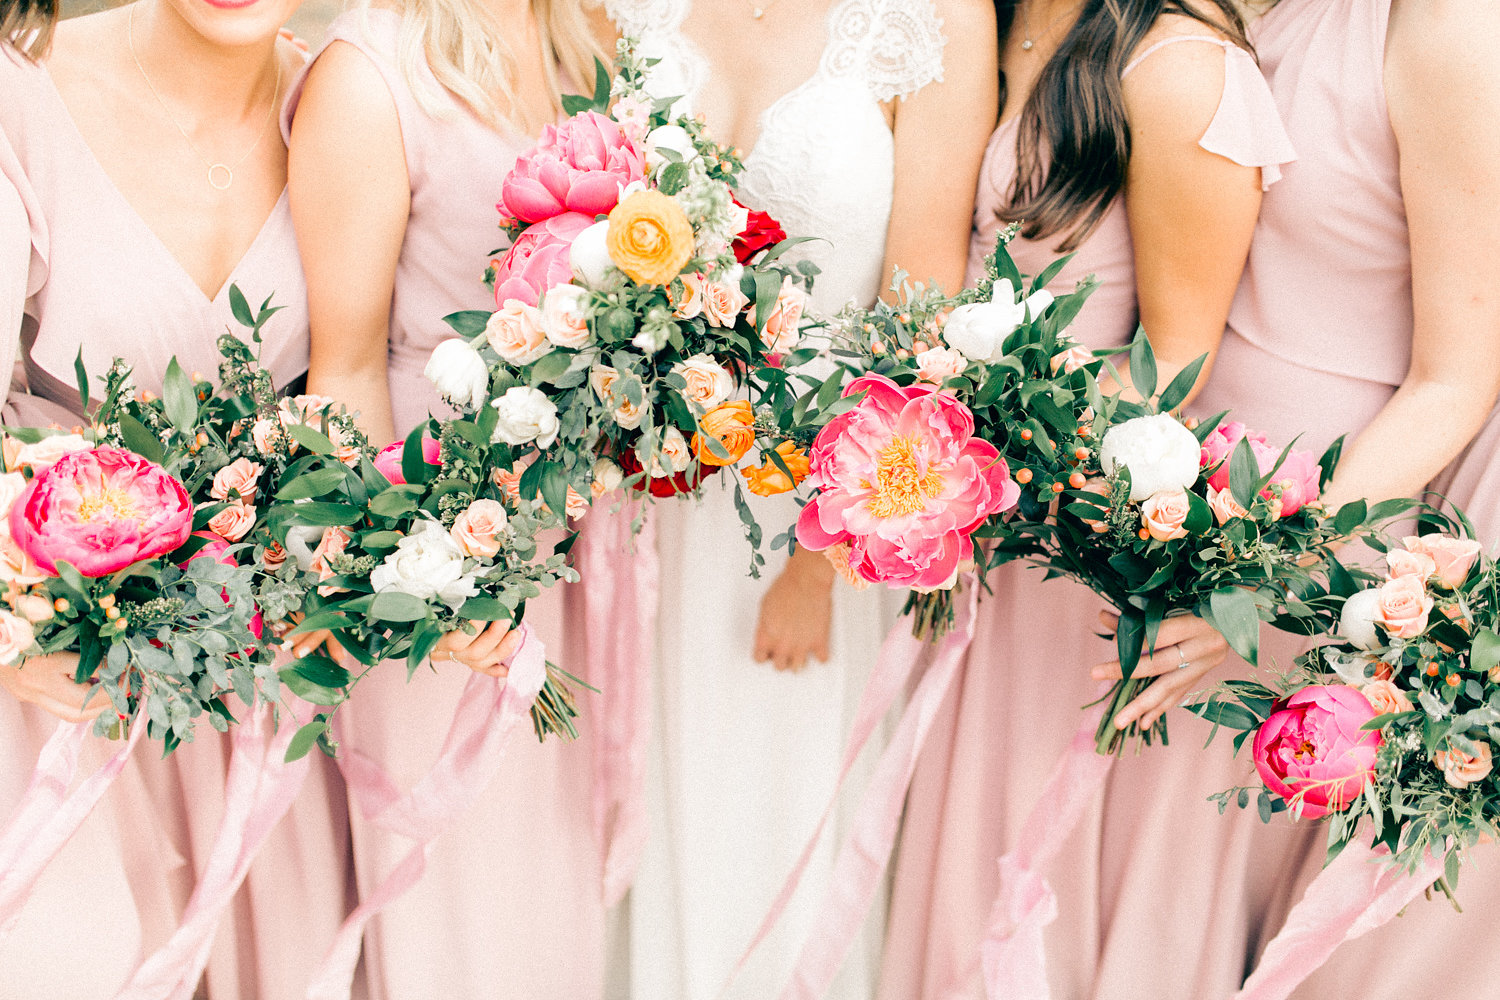 Colorful Cabin Wedding - Bridesmaids in Blush Gowns with Peony and Eucalyptus Bouquets